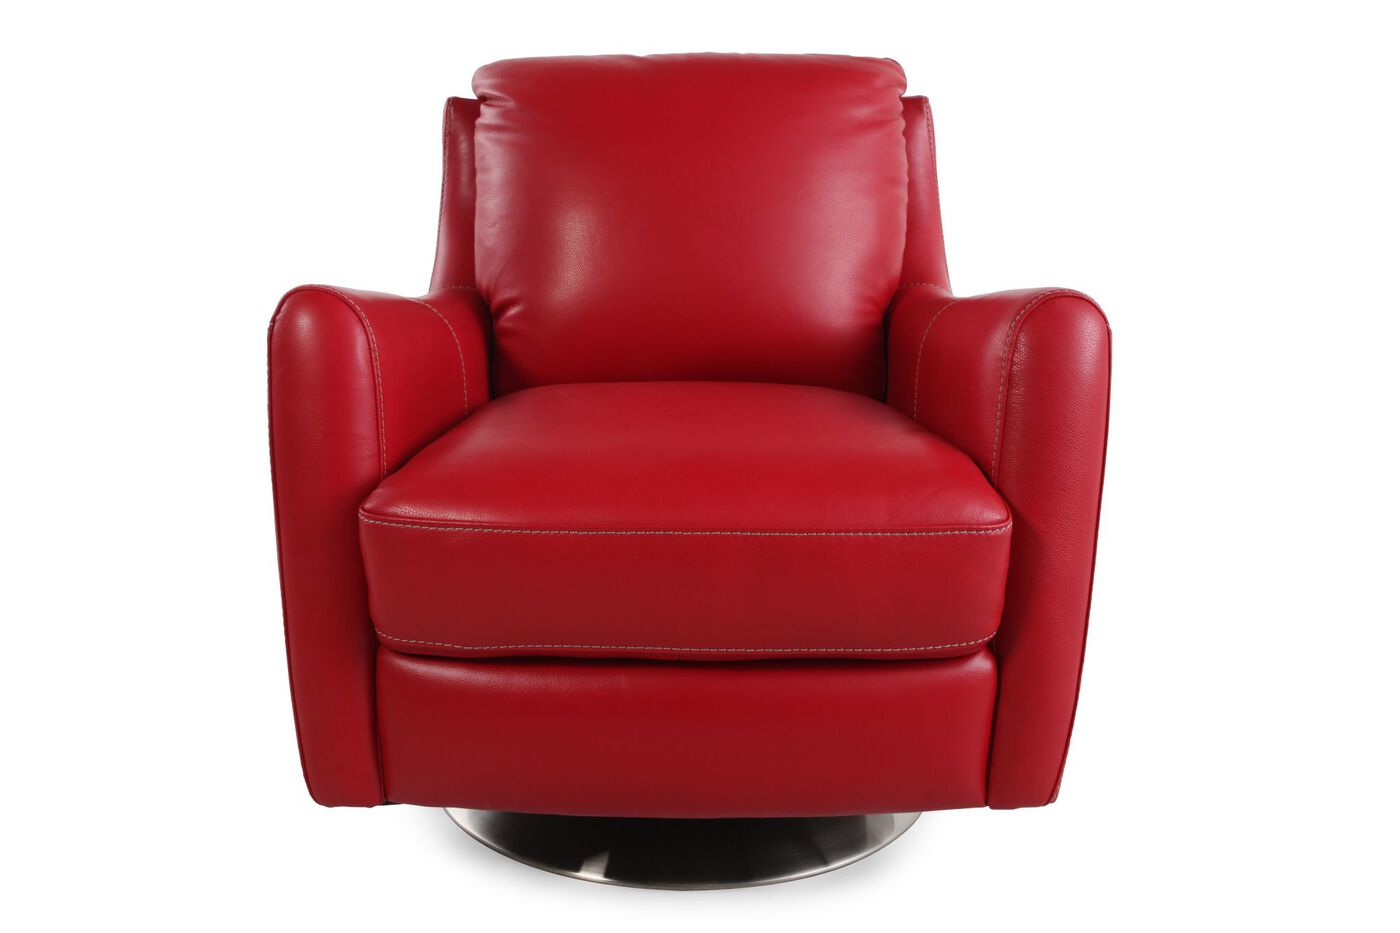 track arm swivel chair in red | mathis brothers furniture